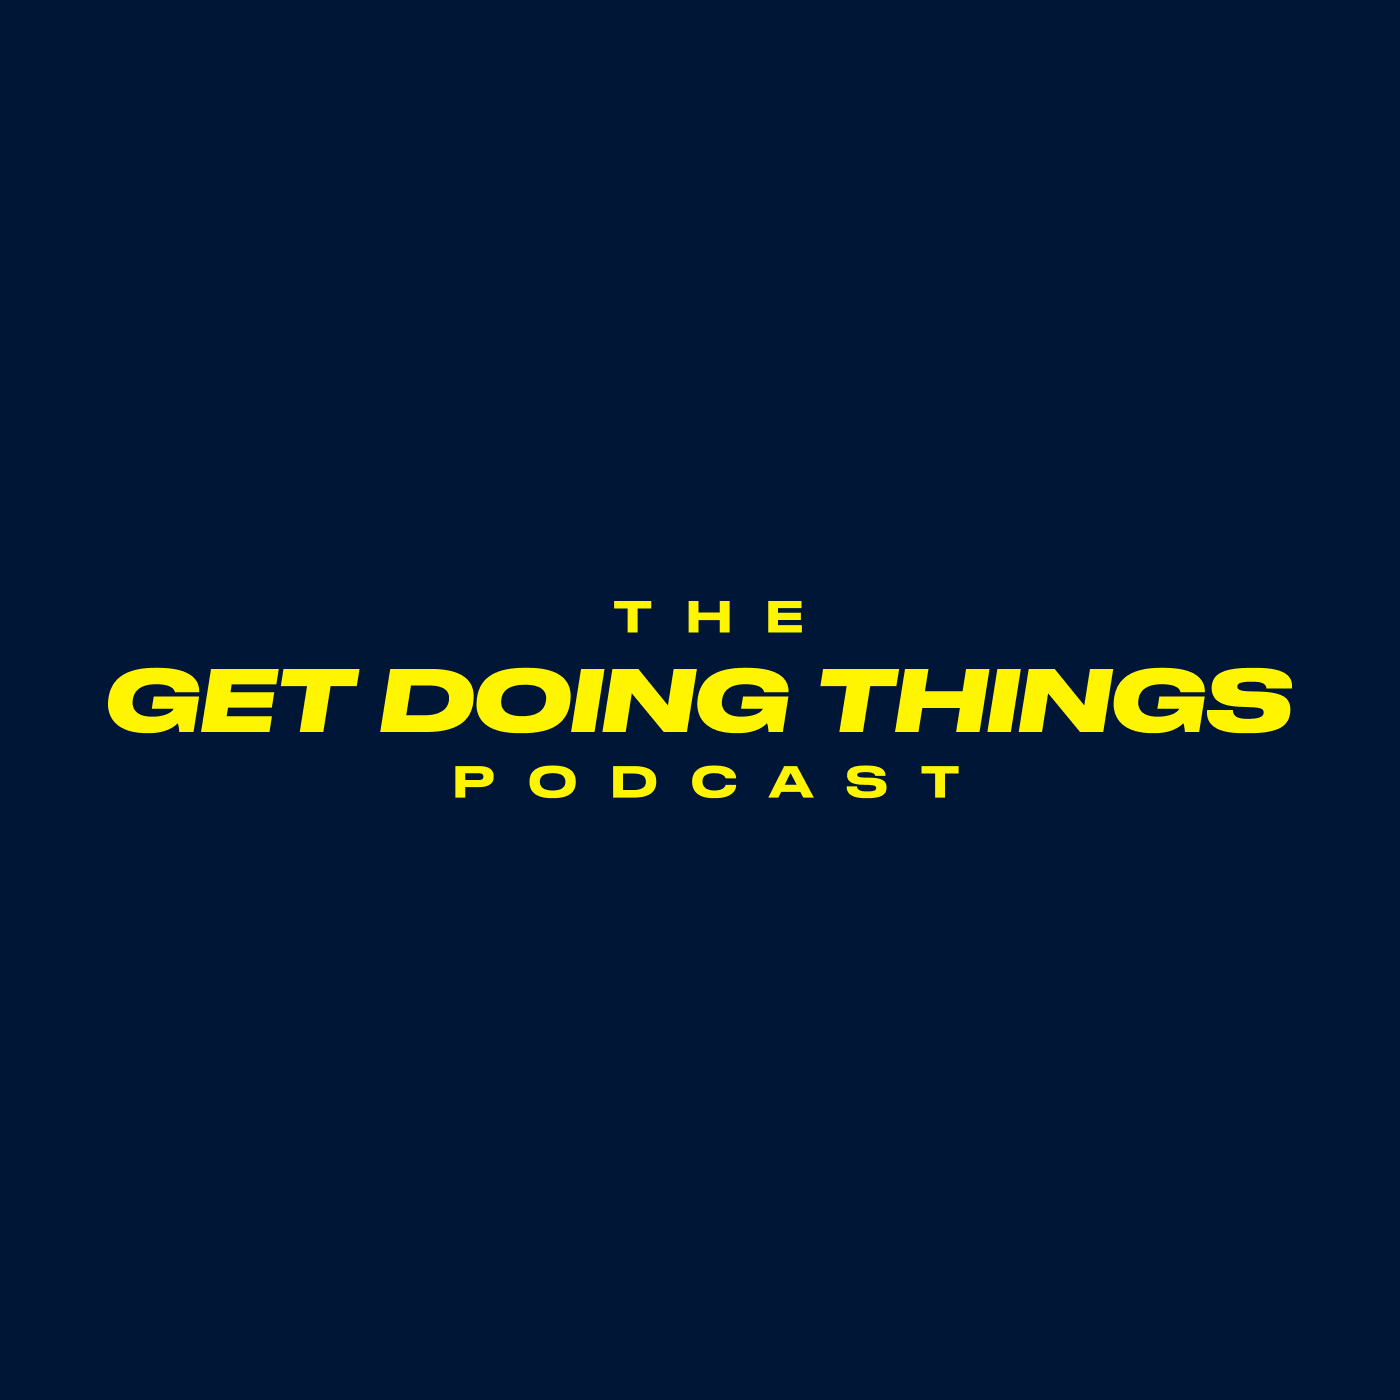 The Get Doing Things Podcast